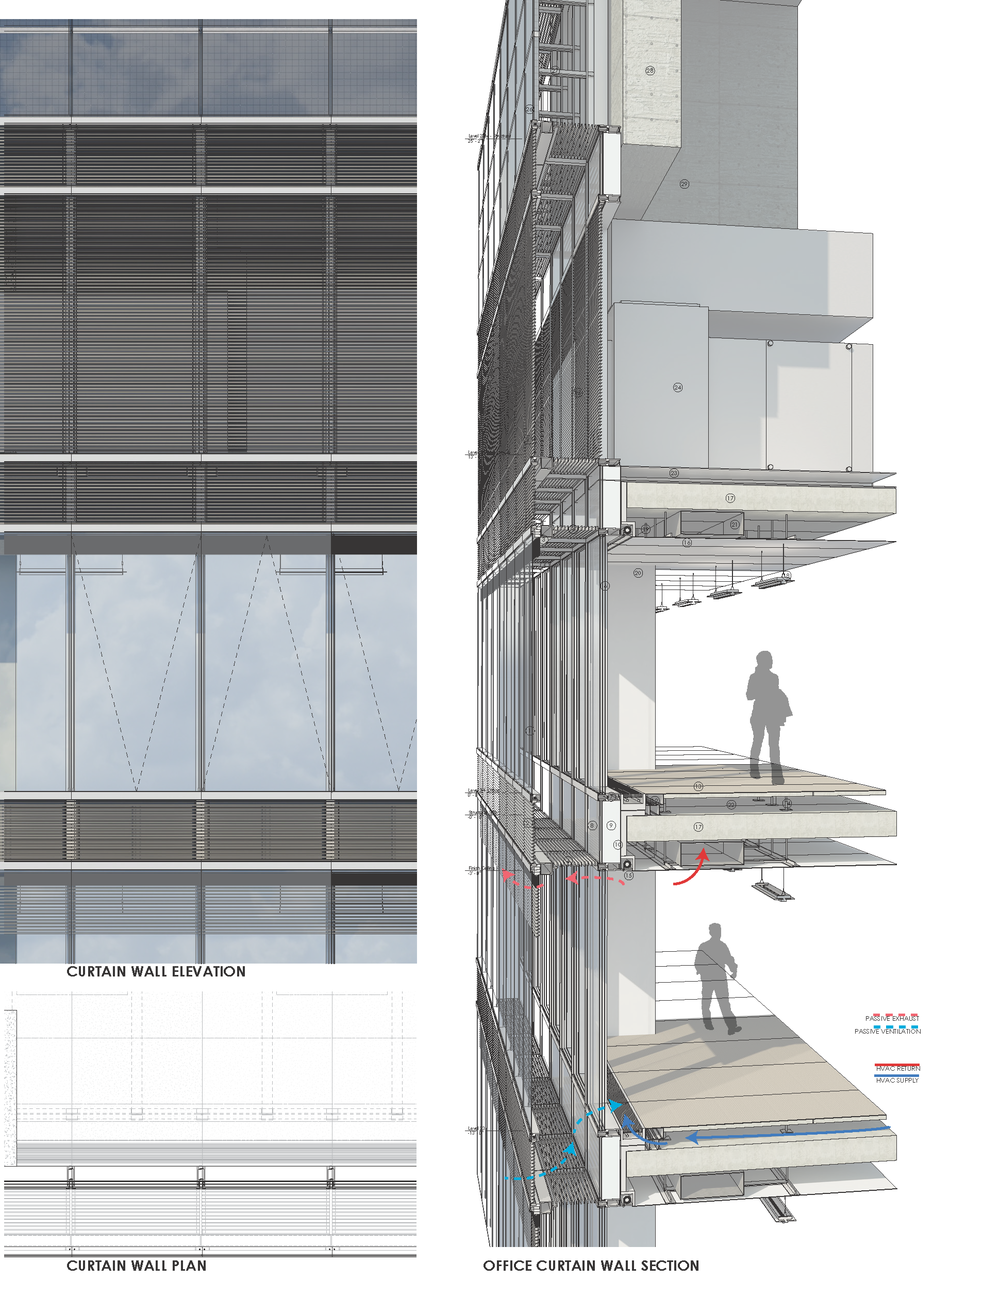 Curtain wall facade elevation - Details Of Installation Of Curtain Wall On A Building Architecture Admirers